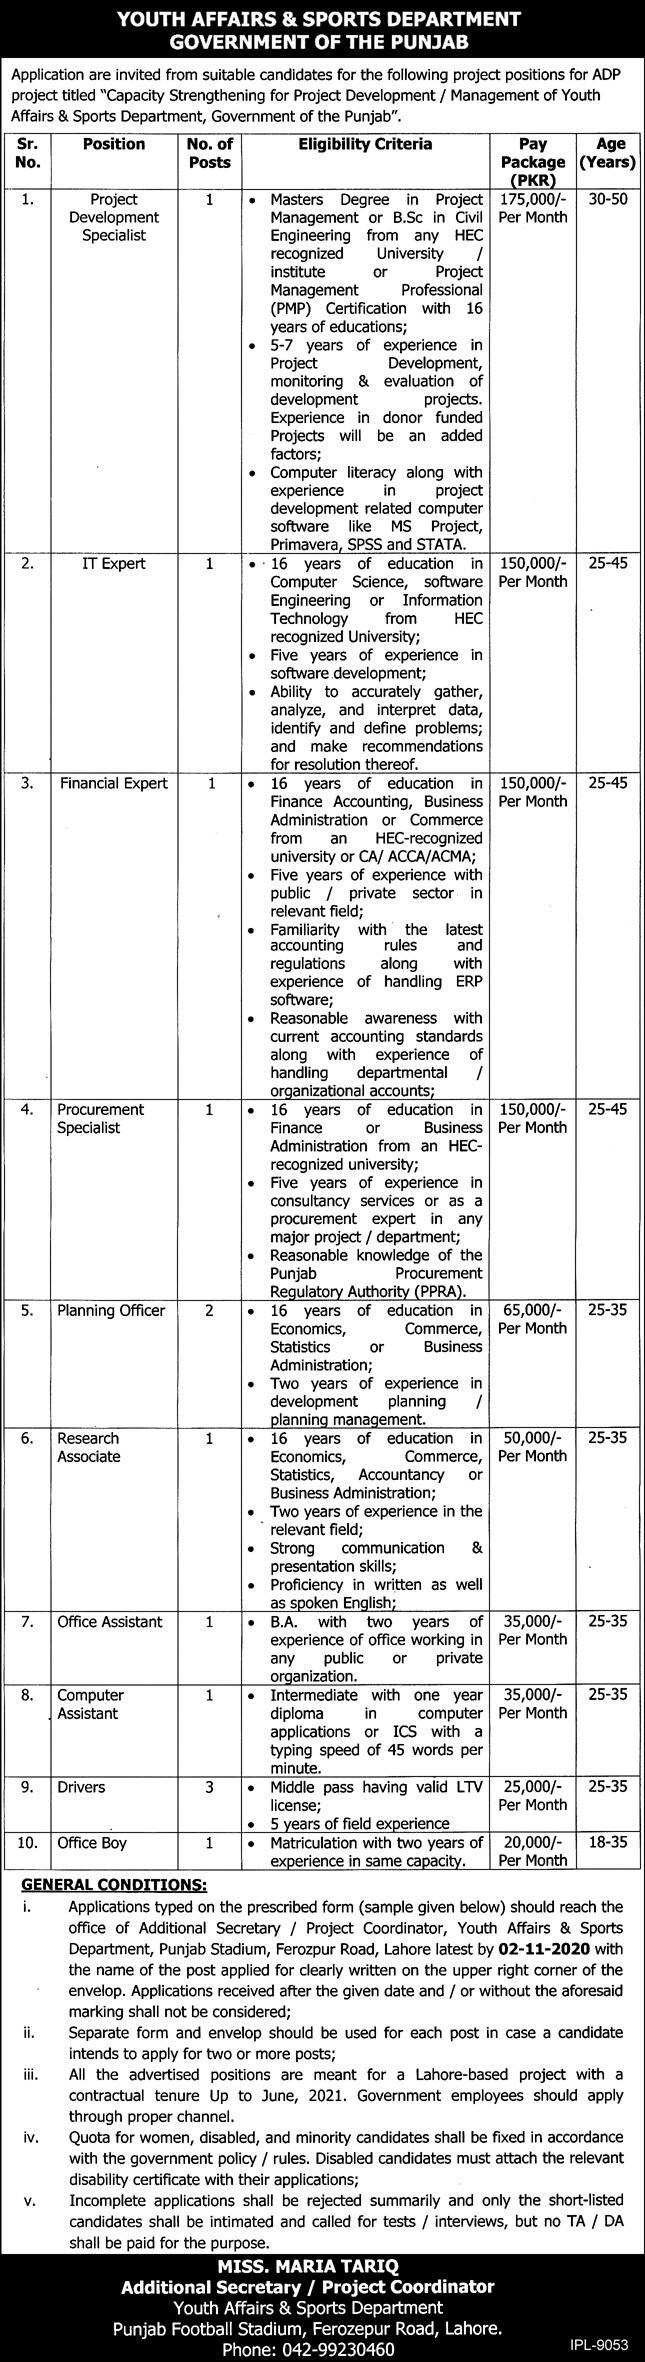 Government of the Punjab Youth Affairs & Sports Department Jobs October 2020